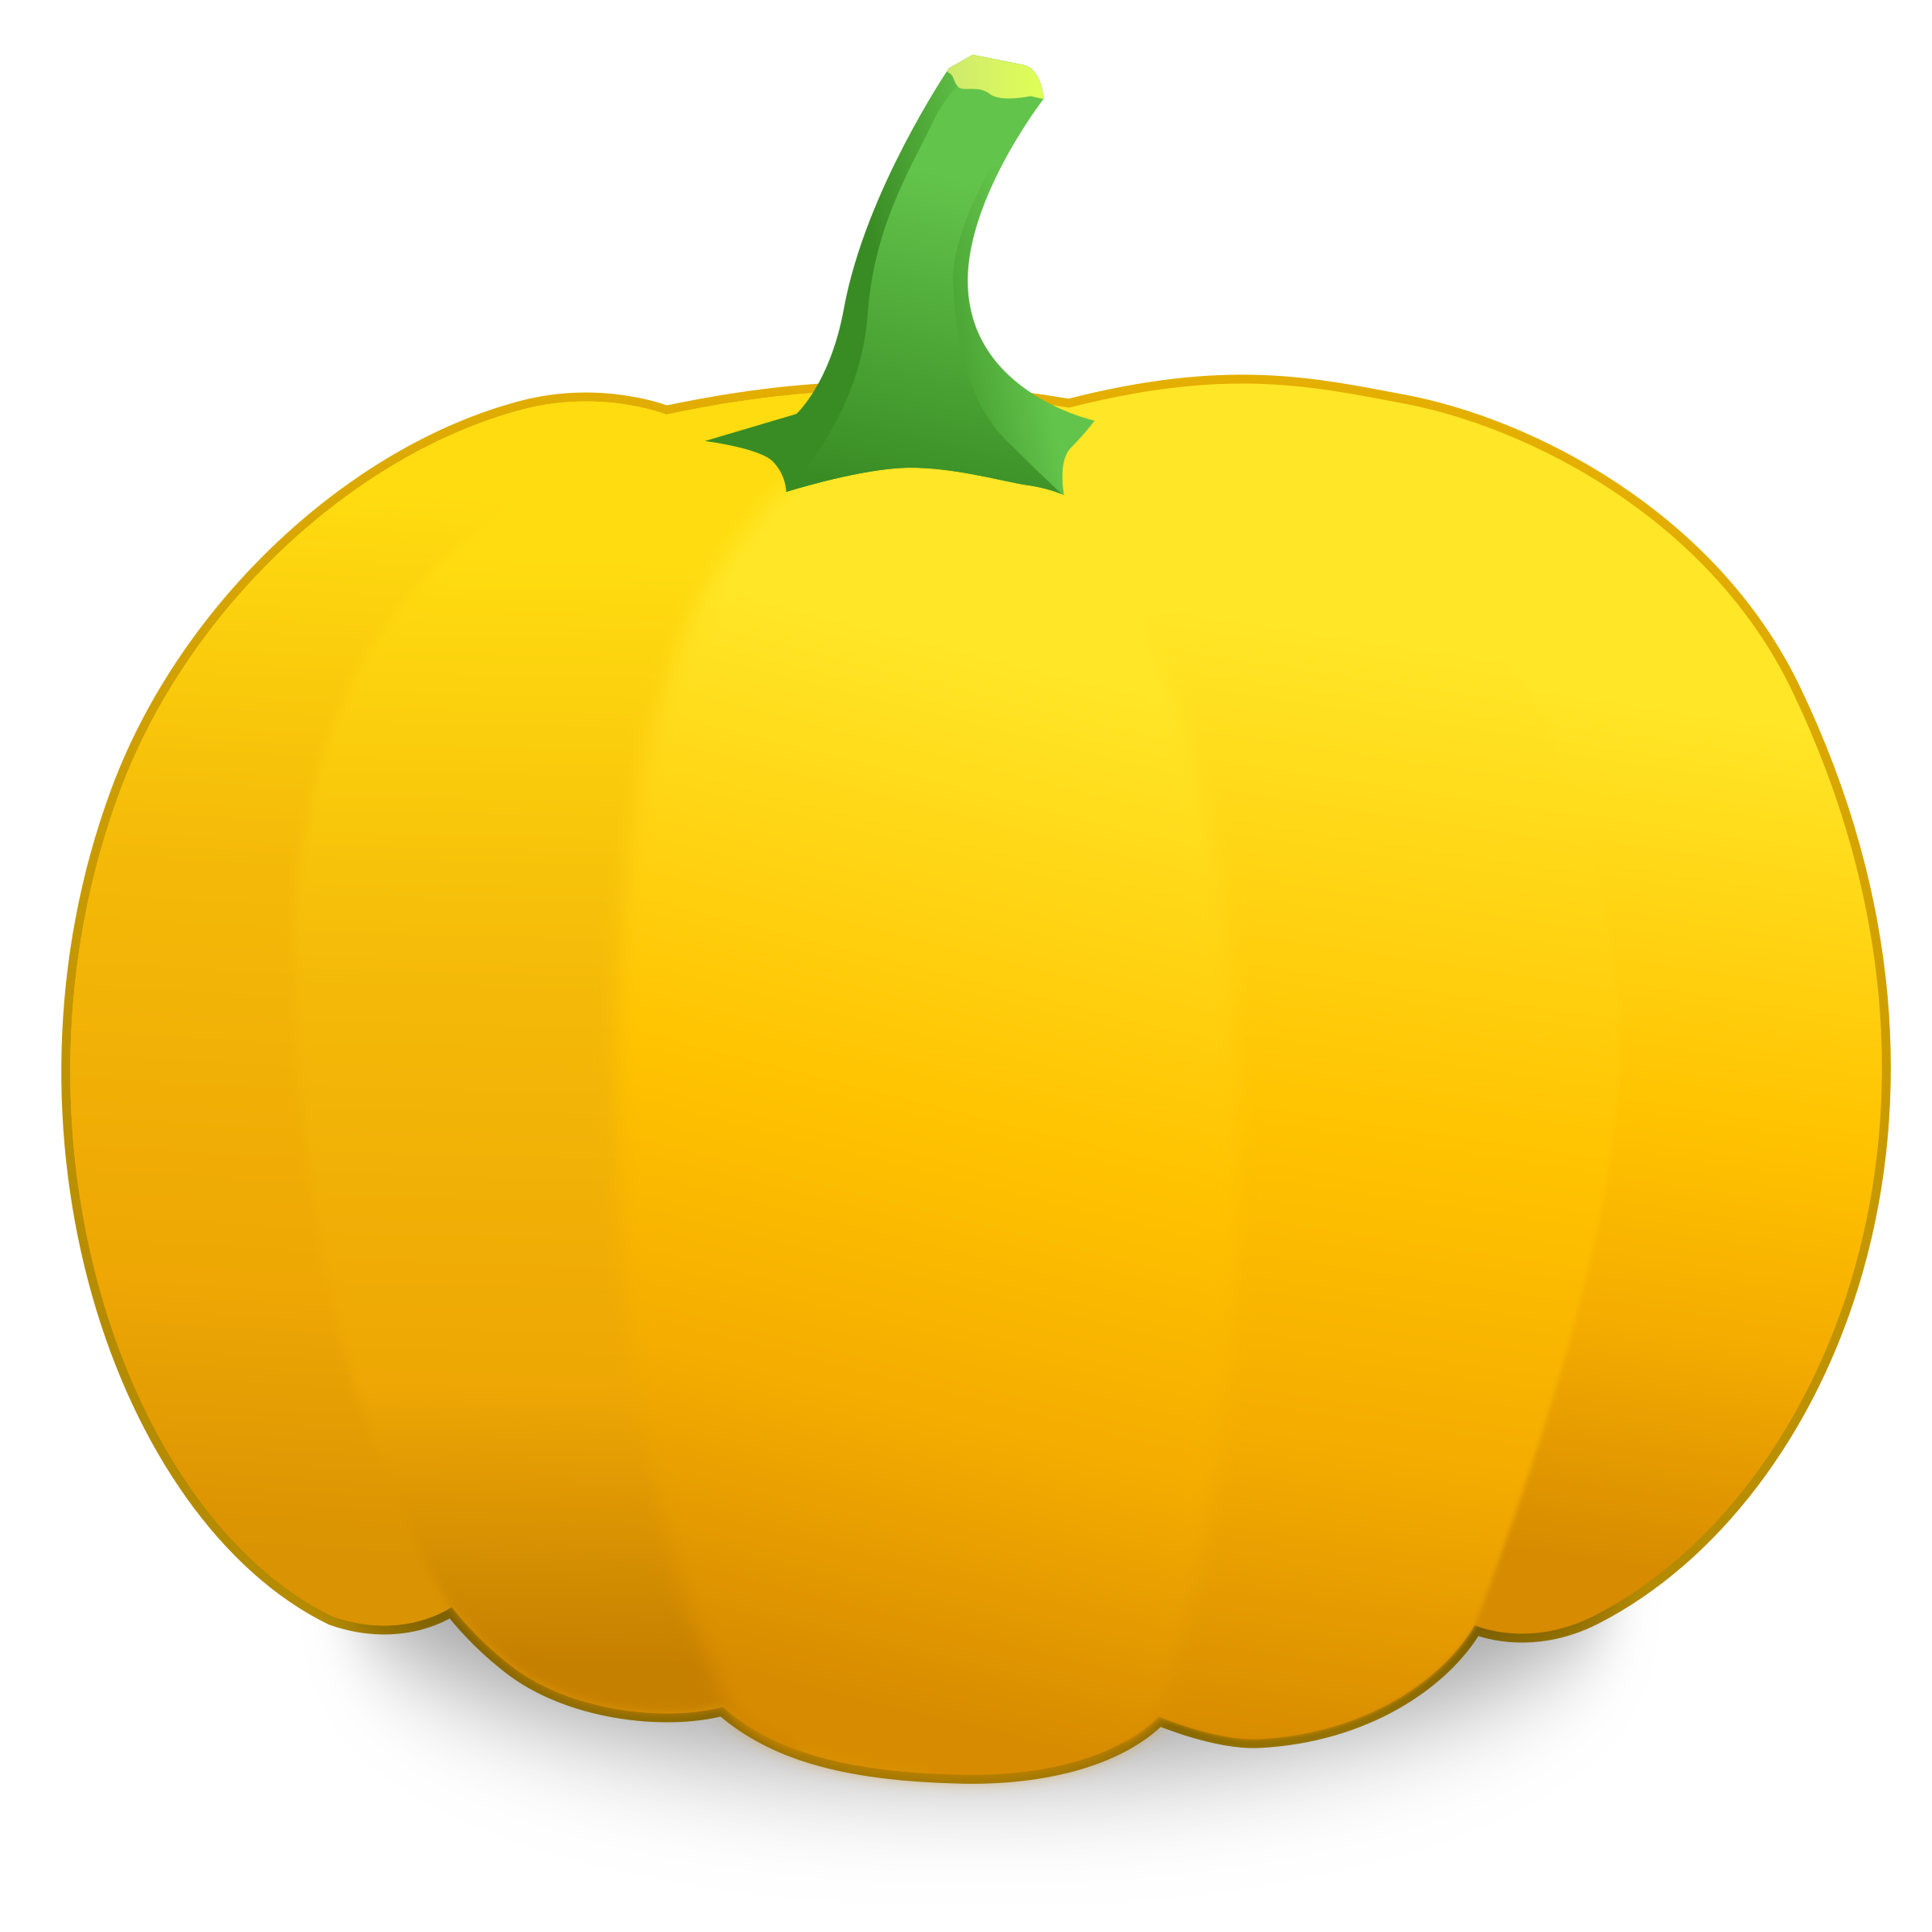 Free clipart of th big pumpkin picture stock Clipart - Pumpkin picture stock